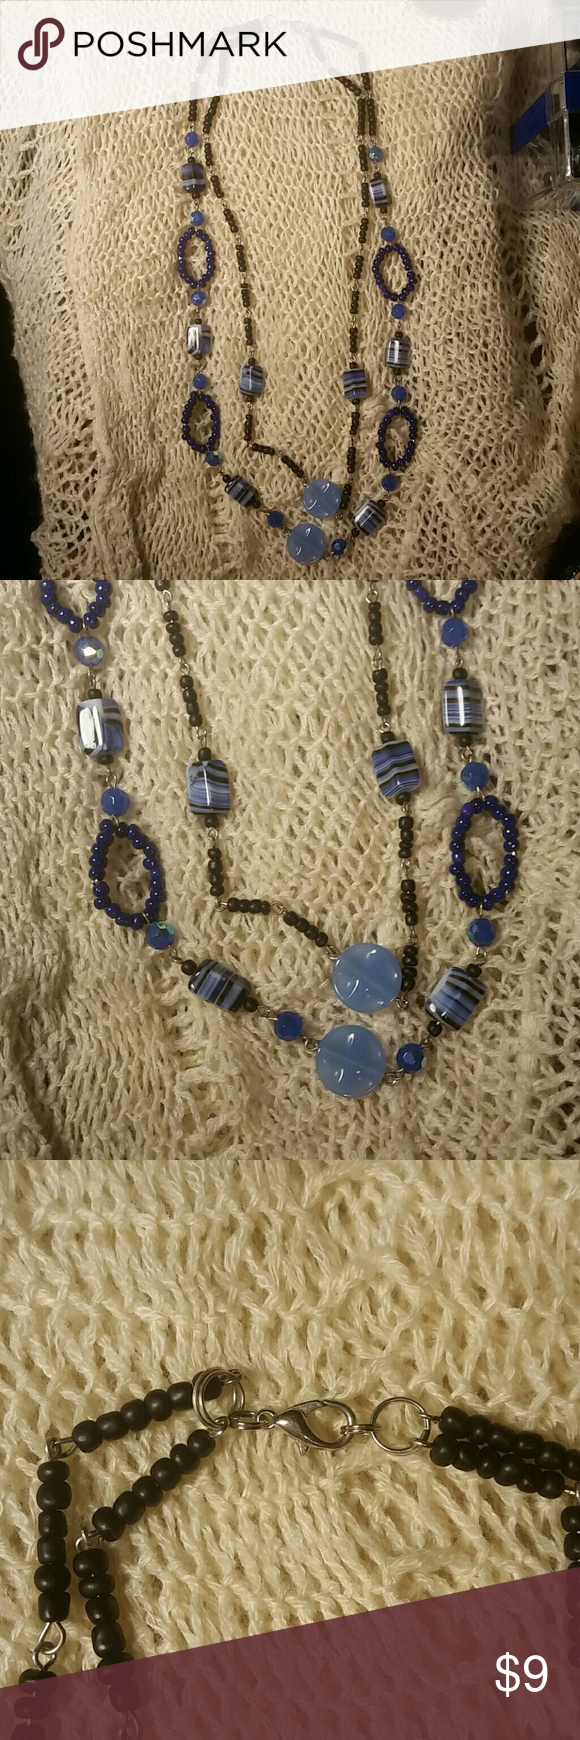 Homemade Jewerly This Awesome Blue Two Strand Made With